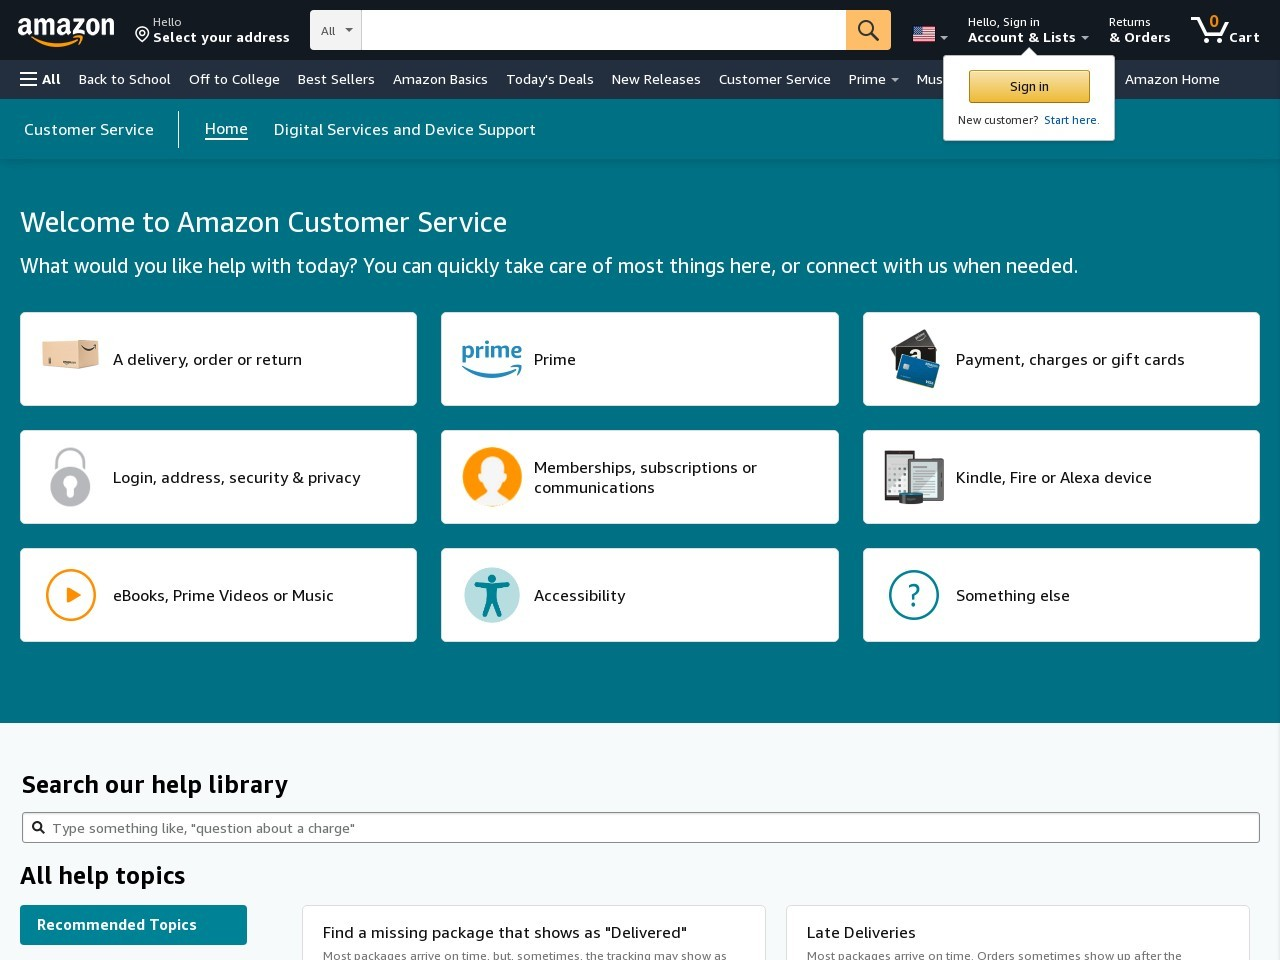 Amazon.com Help: Why Can't I Log into My Account?